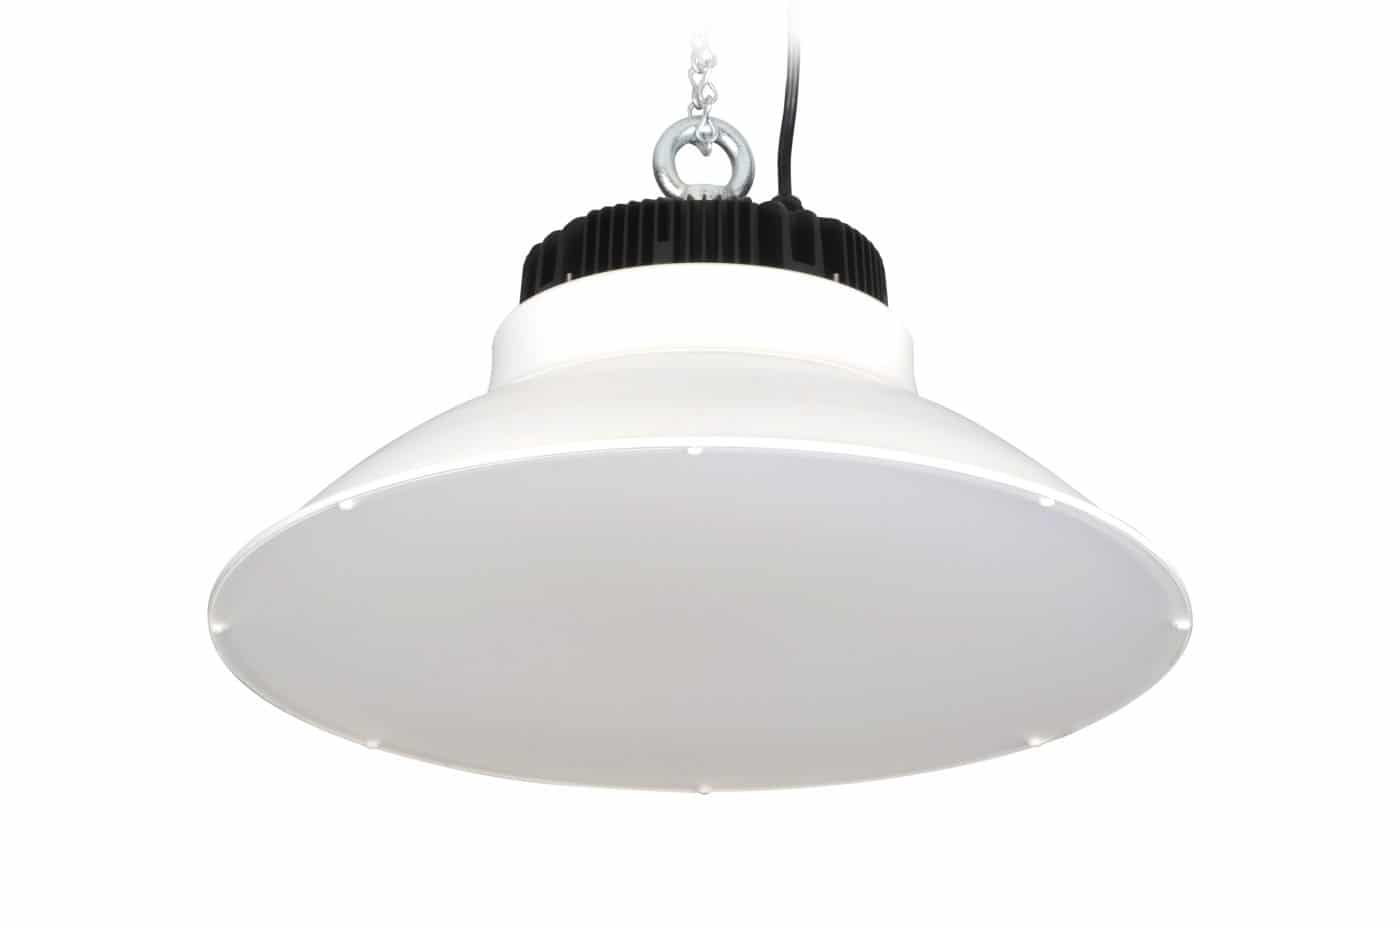 HR-Series, High Bay Reflective LED Lighting Fixture